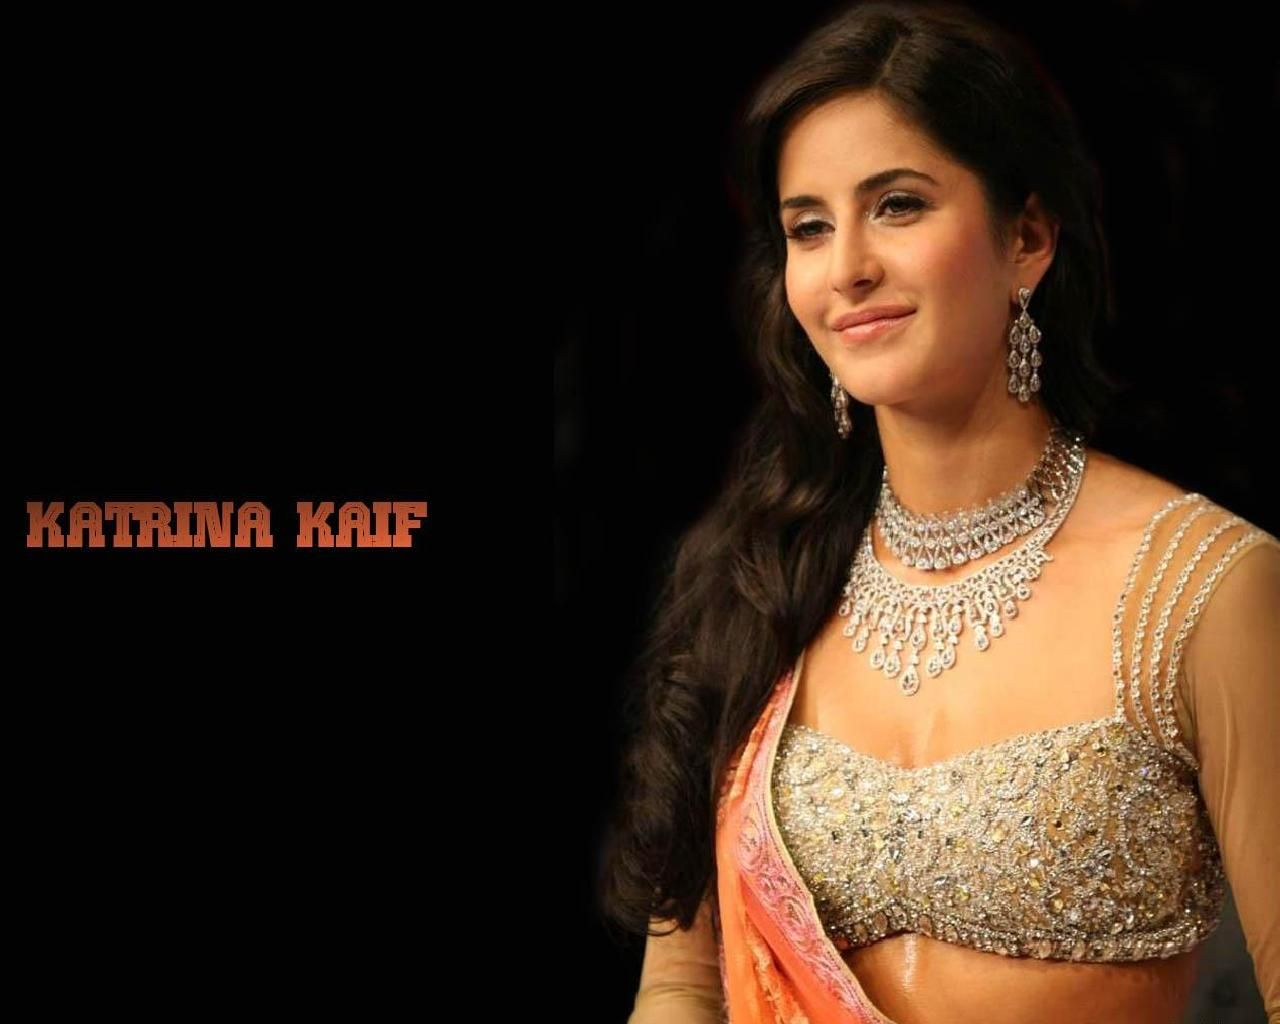 Indian television celebrity wallpapers mark